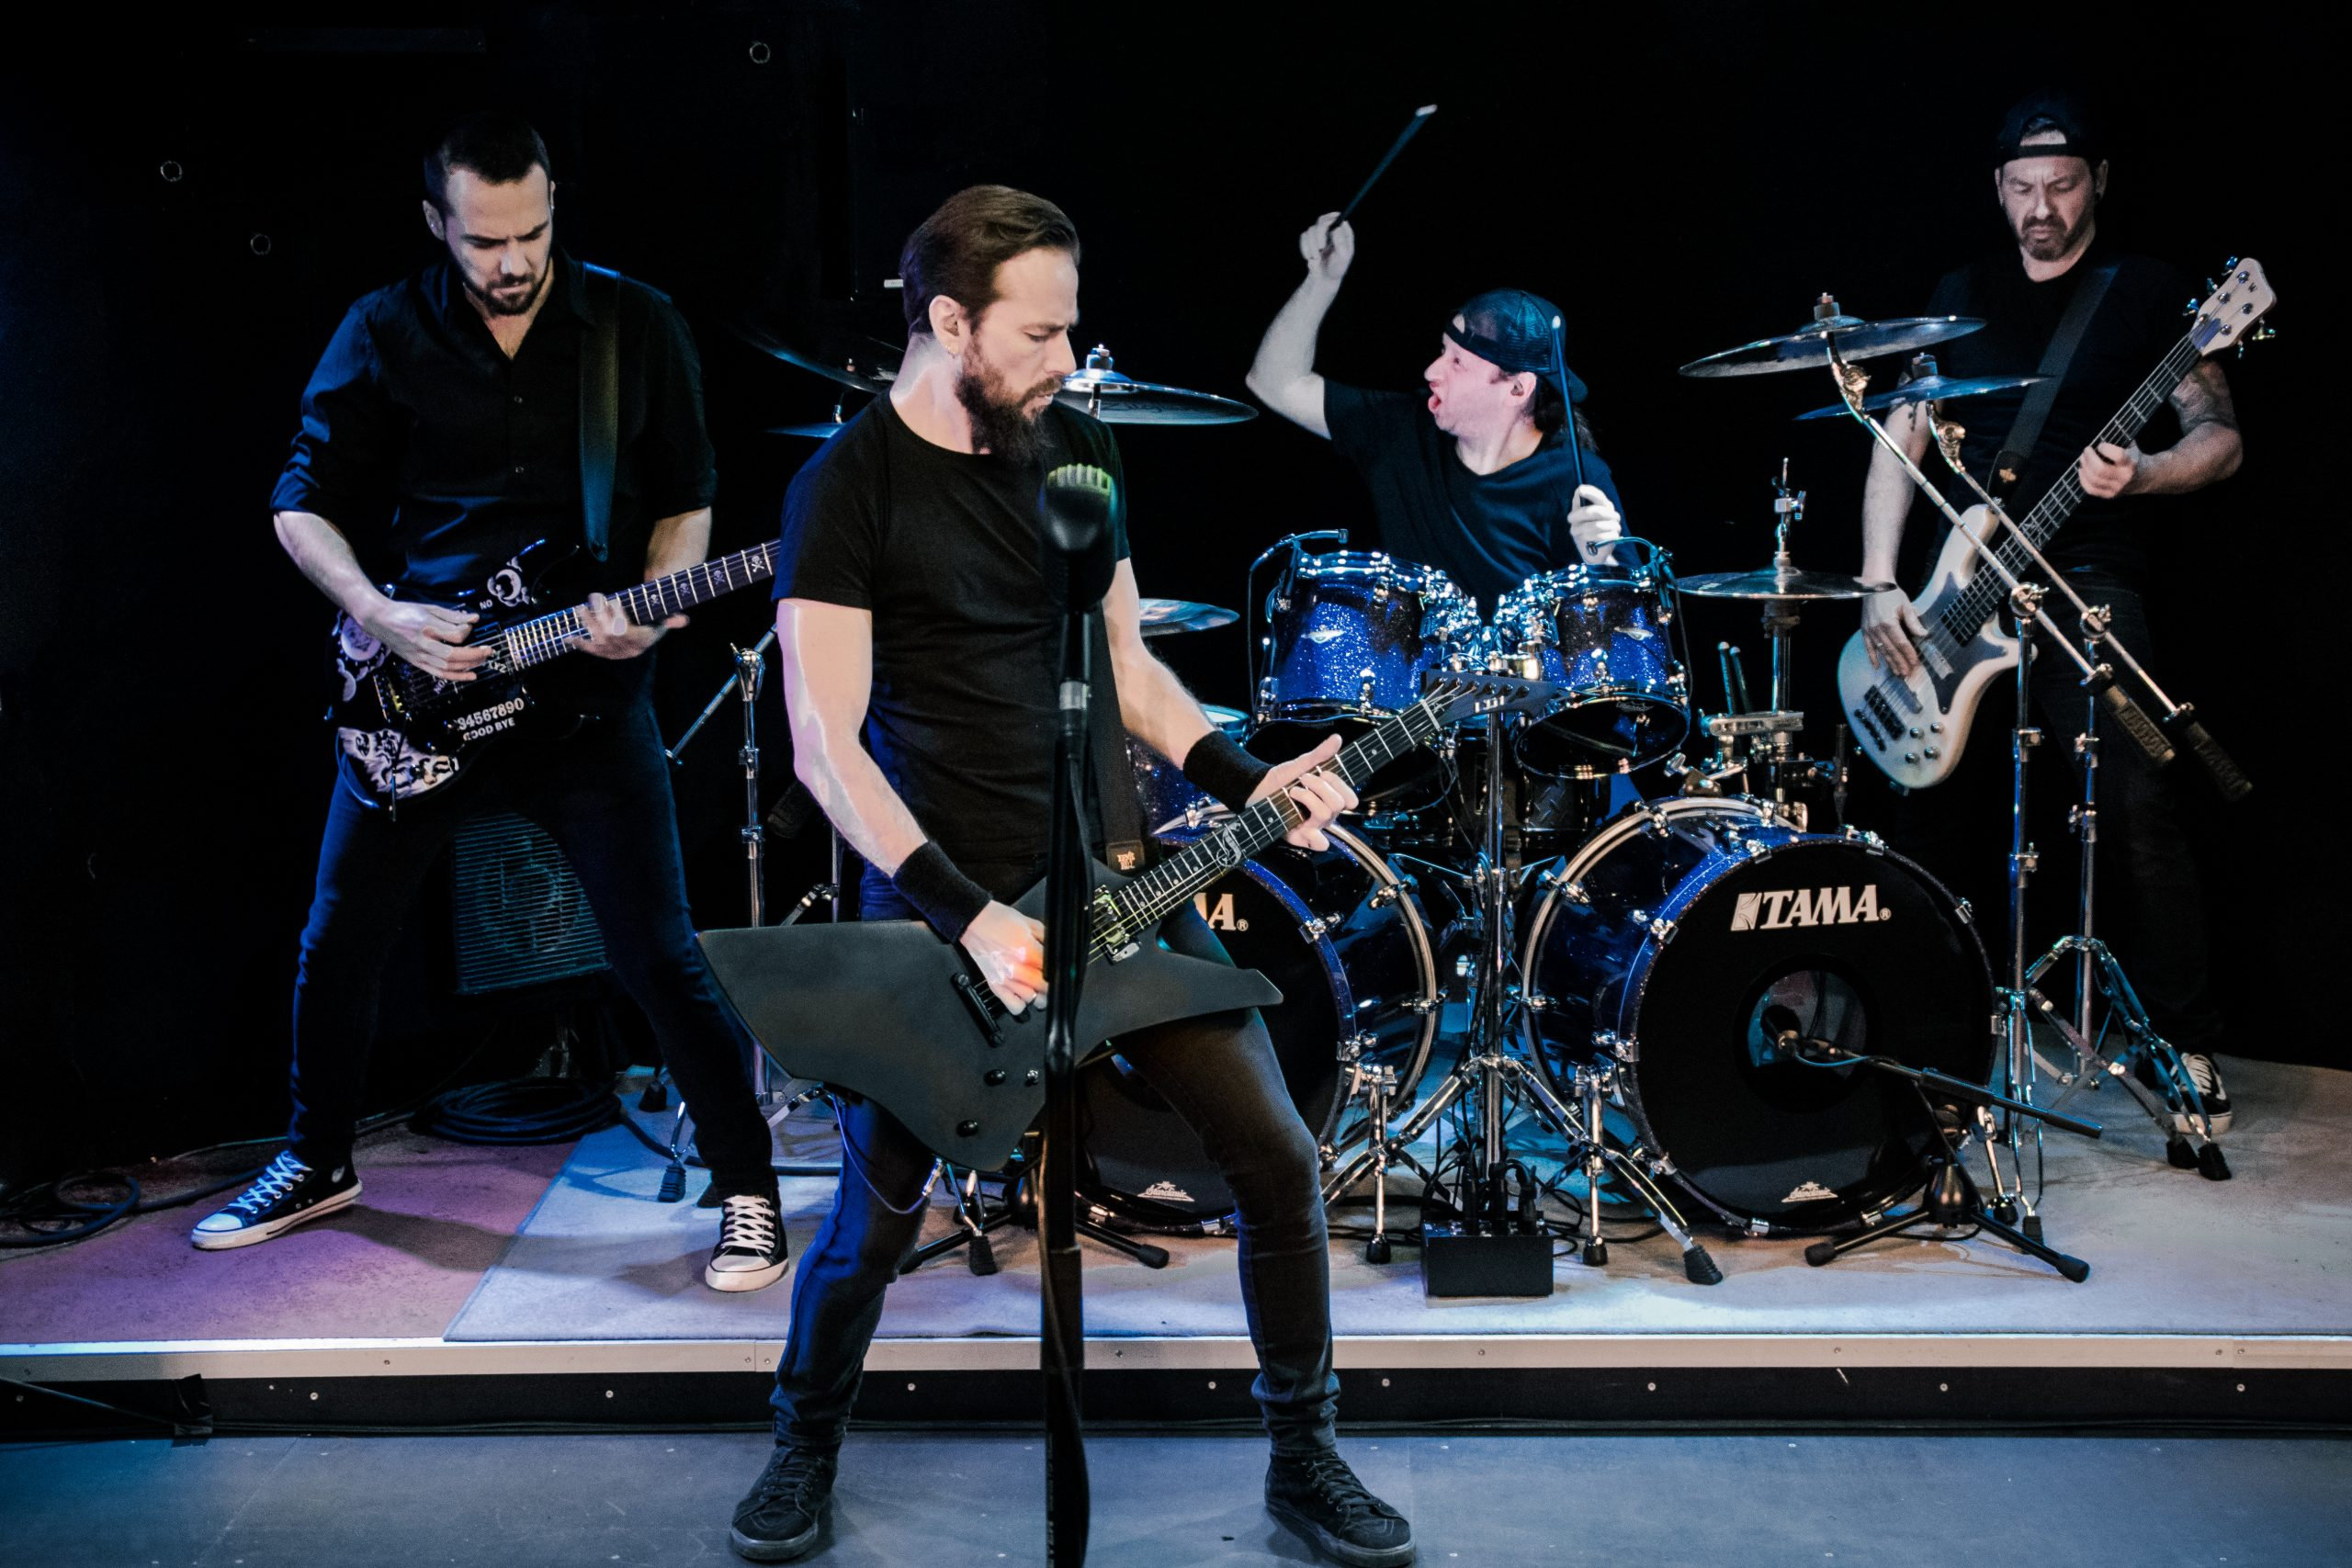 metallica-tribute-band-mytallica-pressefoto-4c